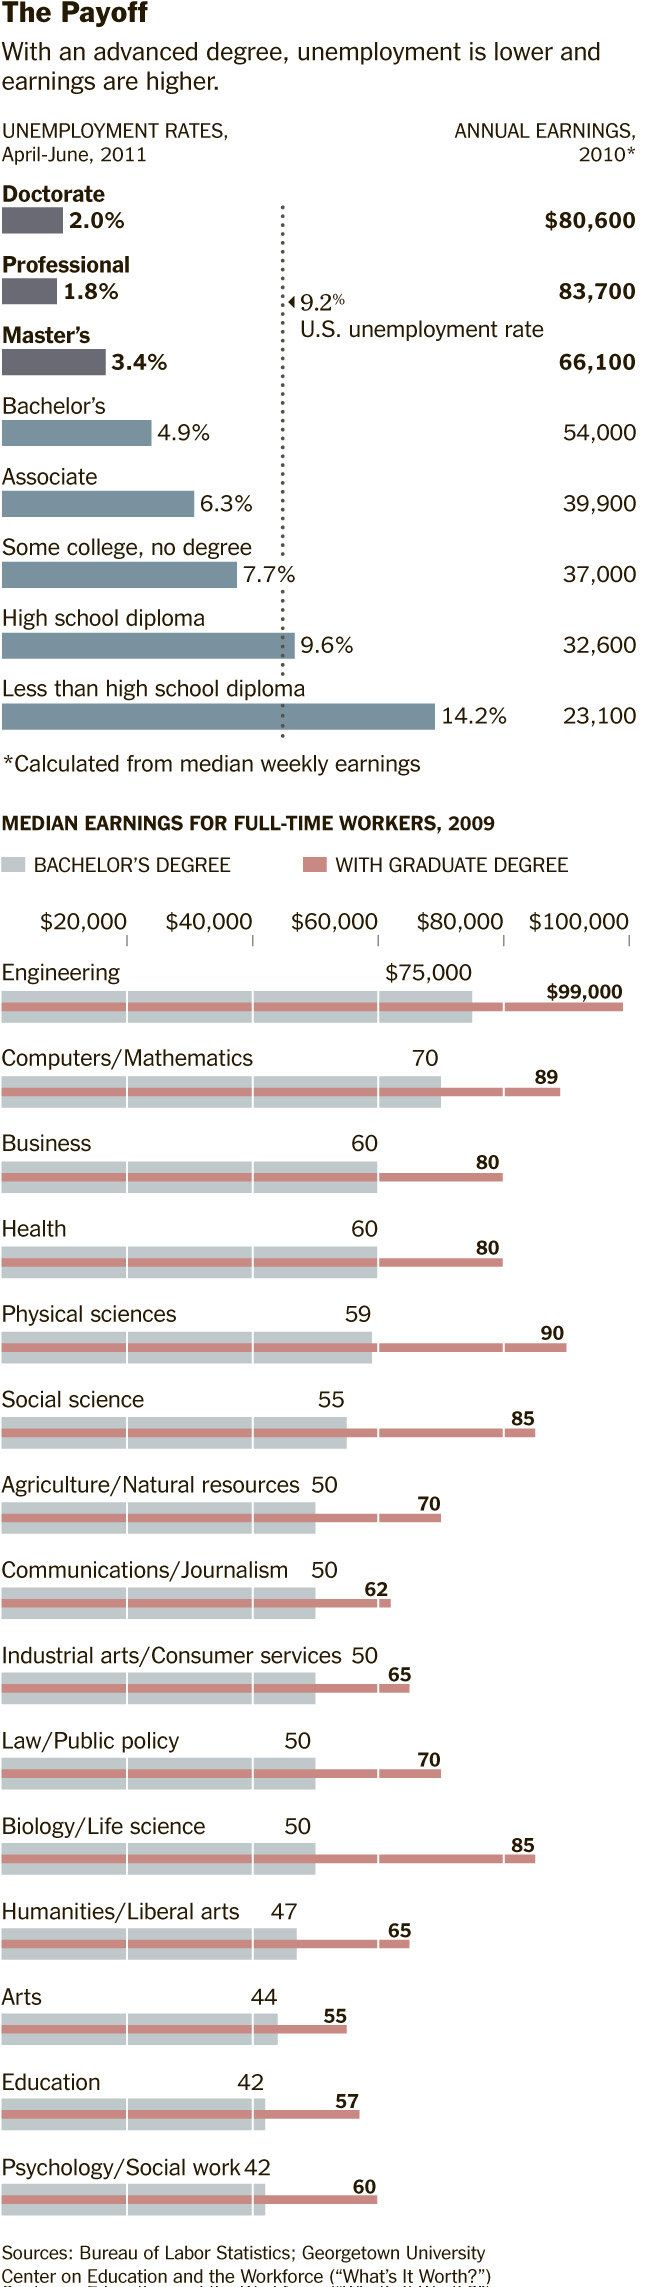 There was a discussion about if college (and college debt) is worth it.  This gives a huge answer.  Yes, a 2 year technical degree might be better than a 4 year psychology degree, but both are better than nothing.  Be ready to continue learning through out your life people.